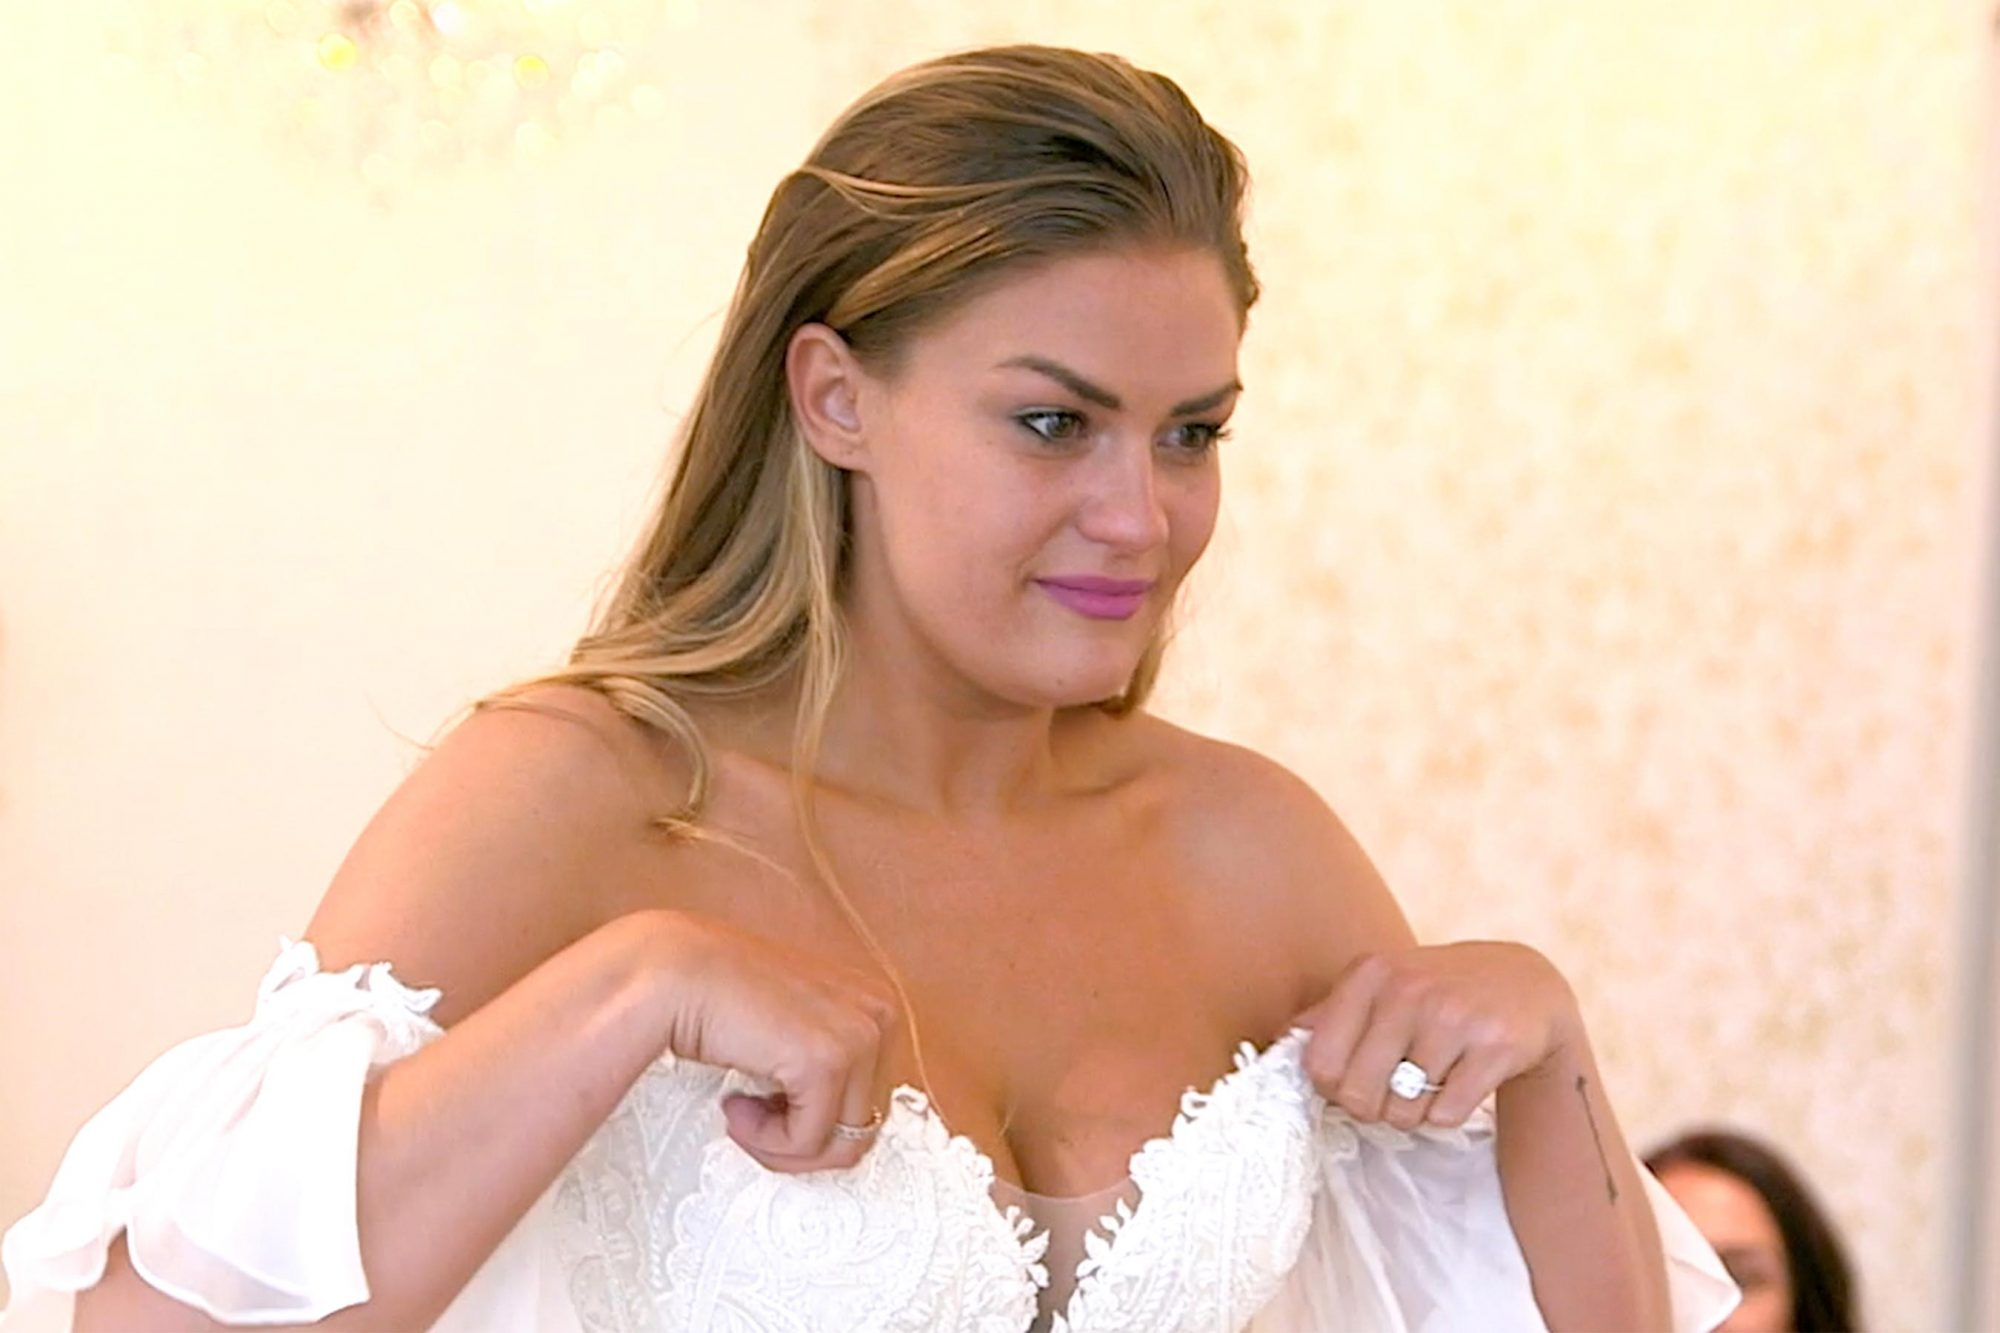 Vanderpump Rules Ep 20: Brittany and the Beast Season 7 | Air Date: April 22, 2019 CR: Bravo